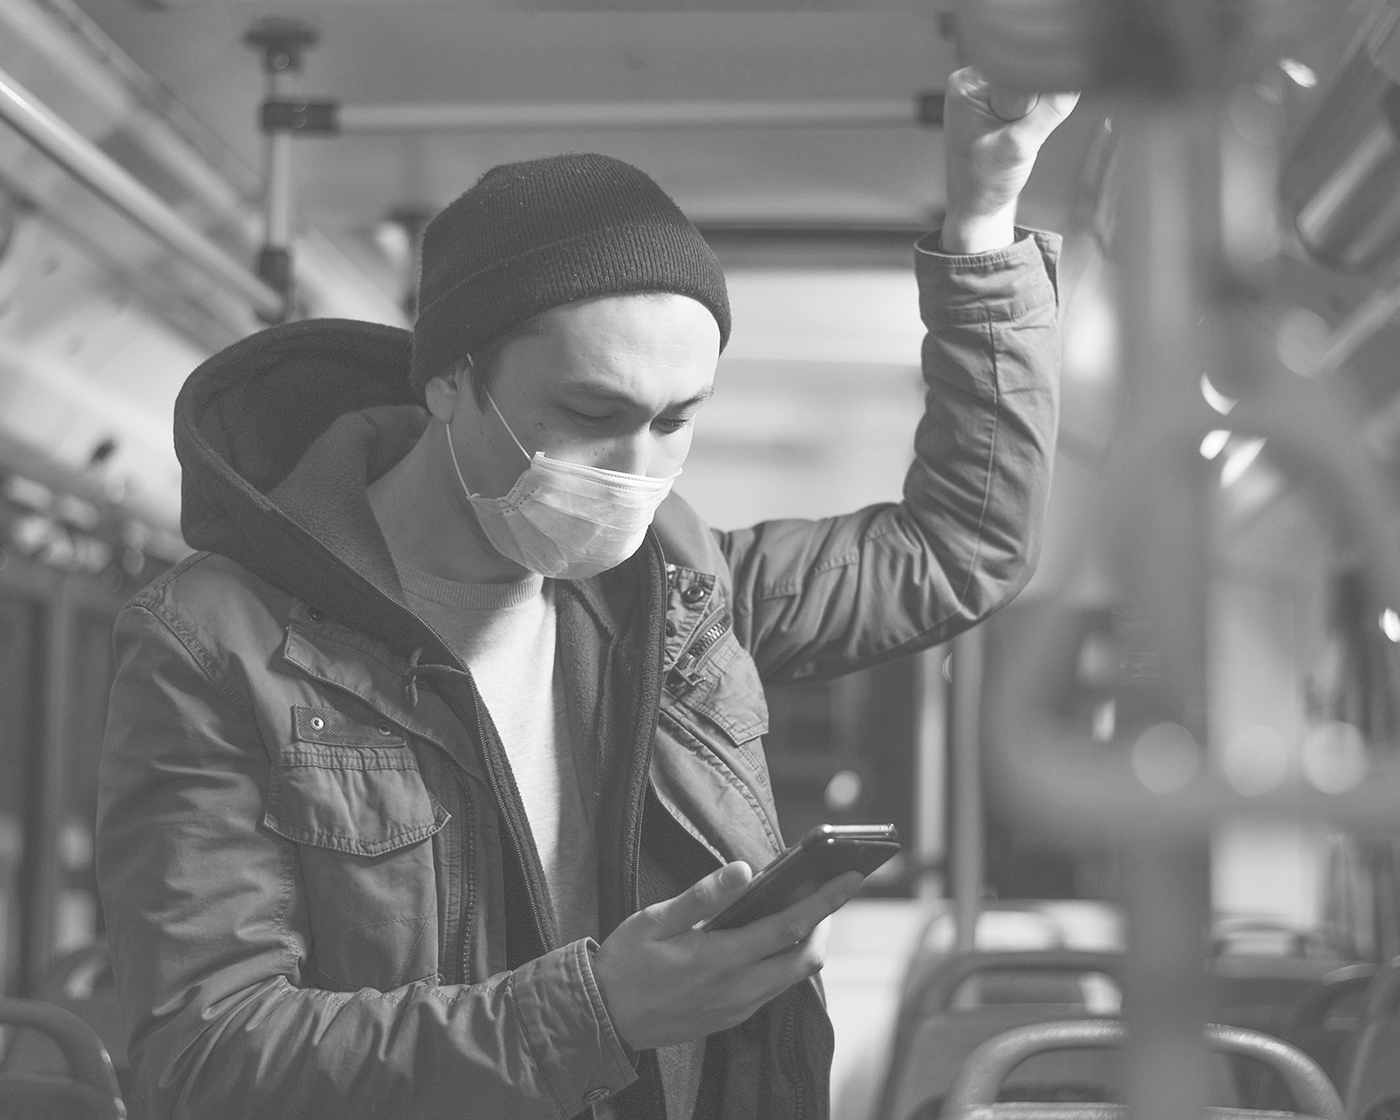 man on a bus alone holding top rail with his left hand reading his phone in his right hand, he is wearing a surgical mask